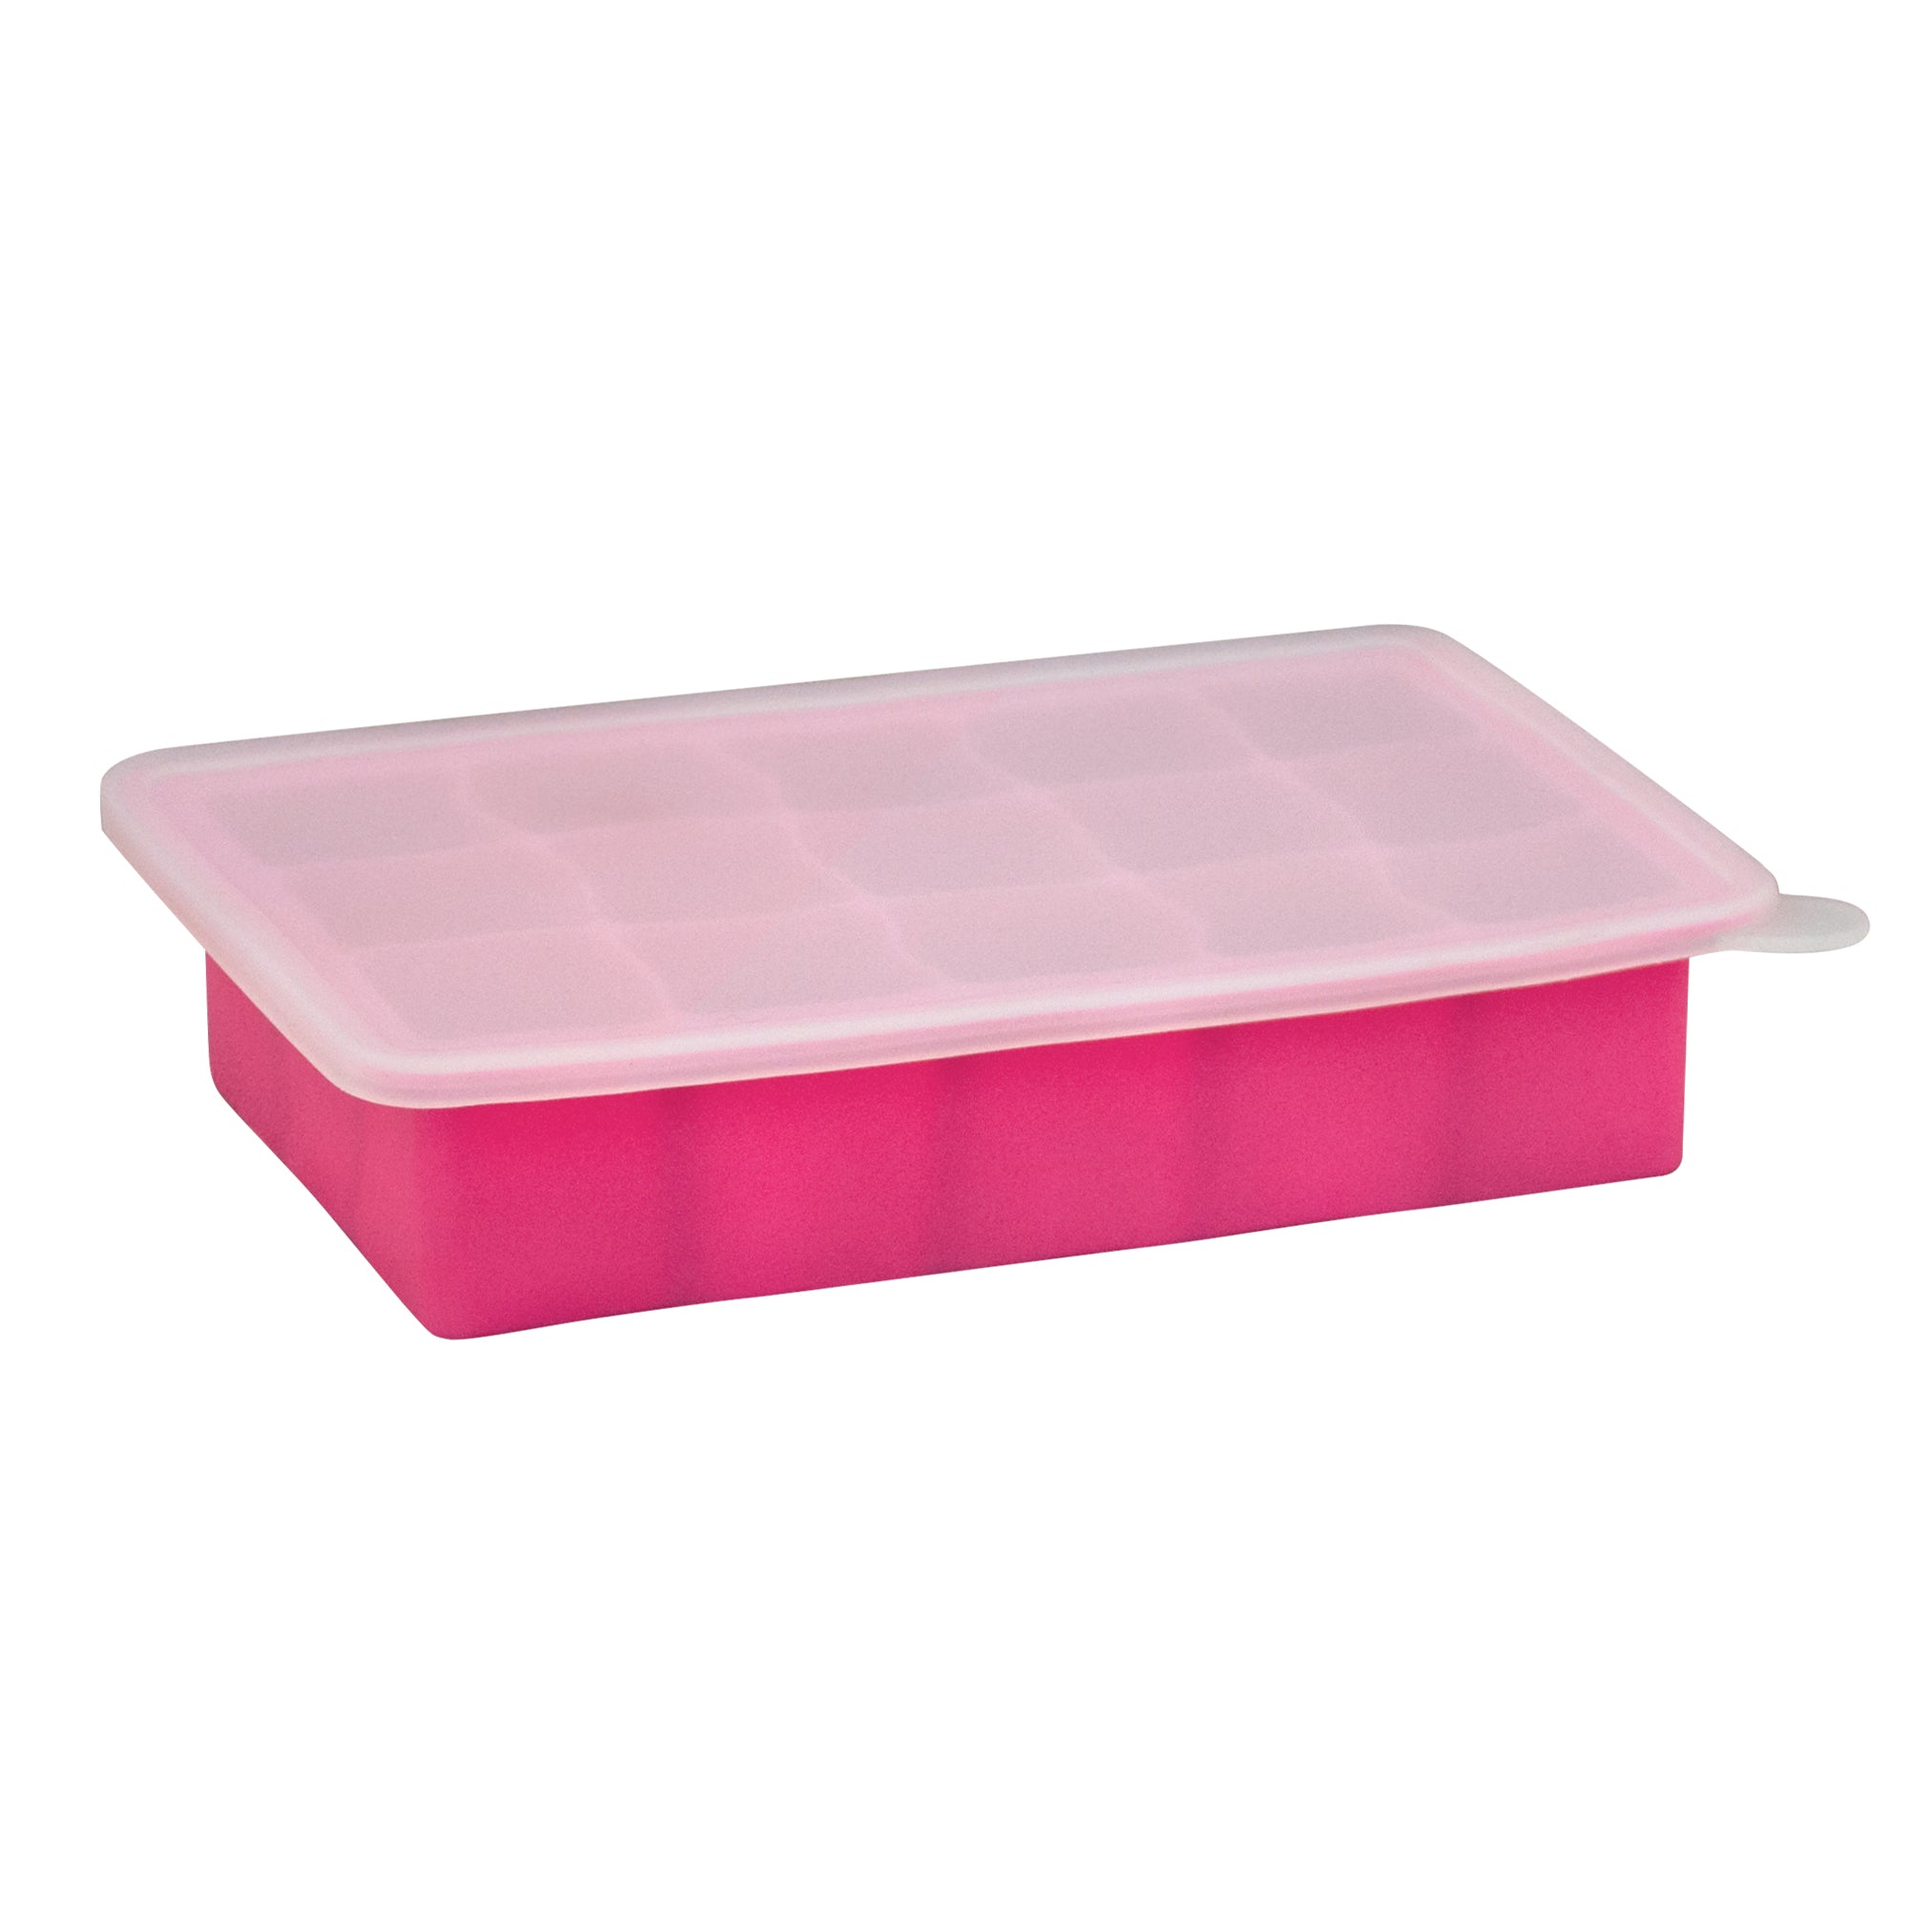 Fresh Baby Food Freezer Tray - Le Bébé Chic Boutique